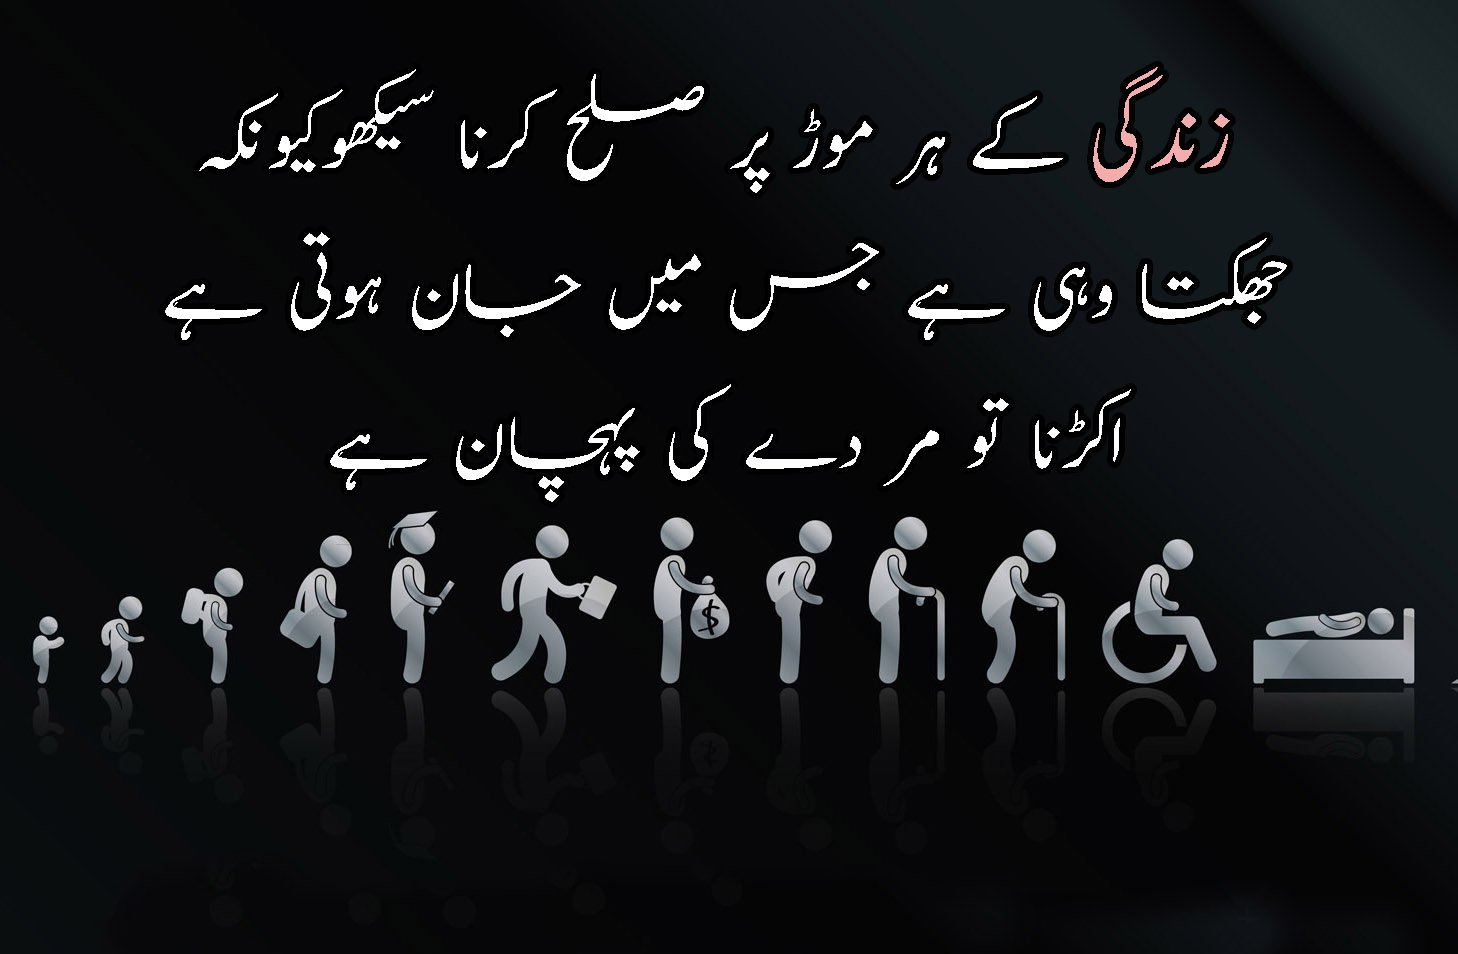 Sad Urdu Quotes About Life & Beautiful Zindagi Quotes In